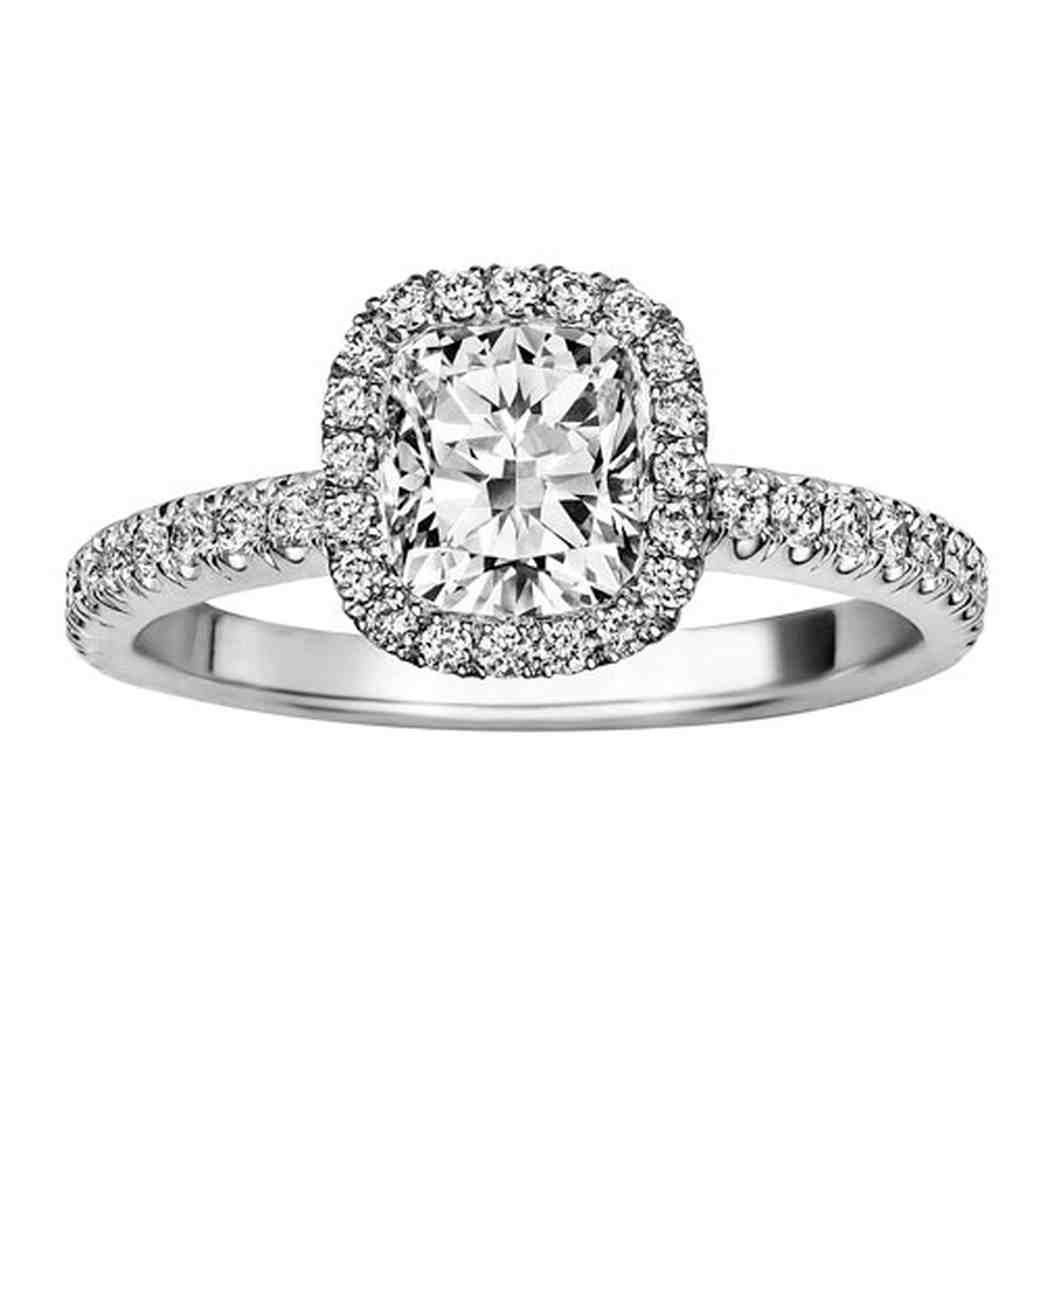 Cushion-Cut Diamond Engagement Rings | Martha Stewart Weddings